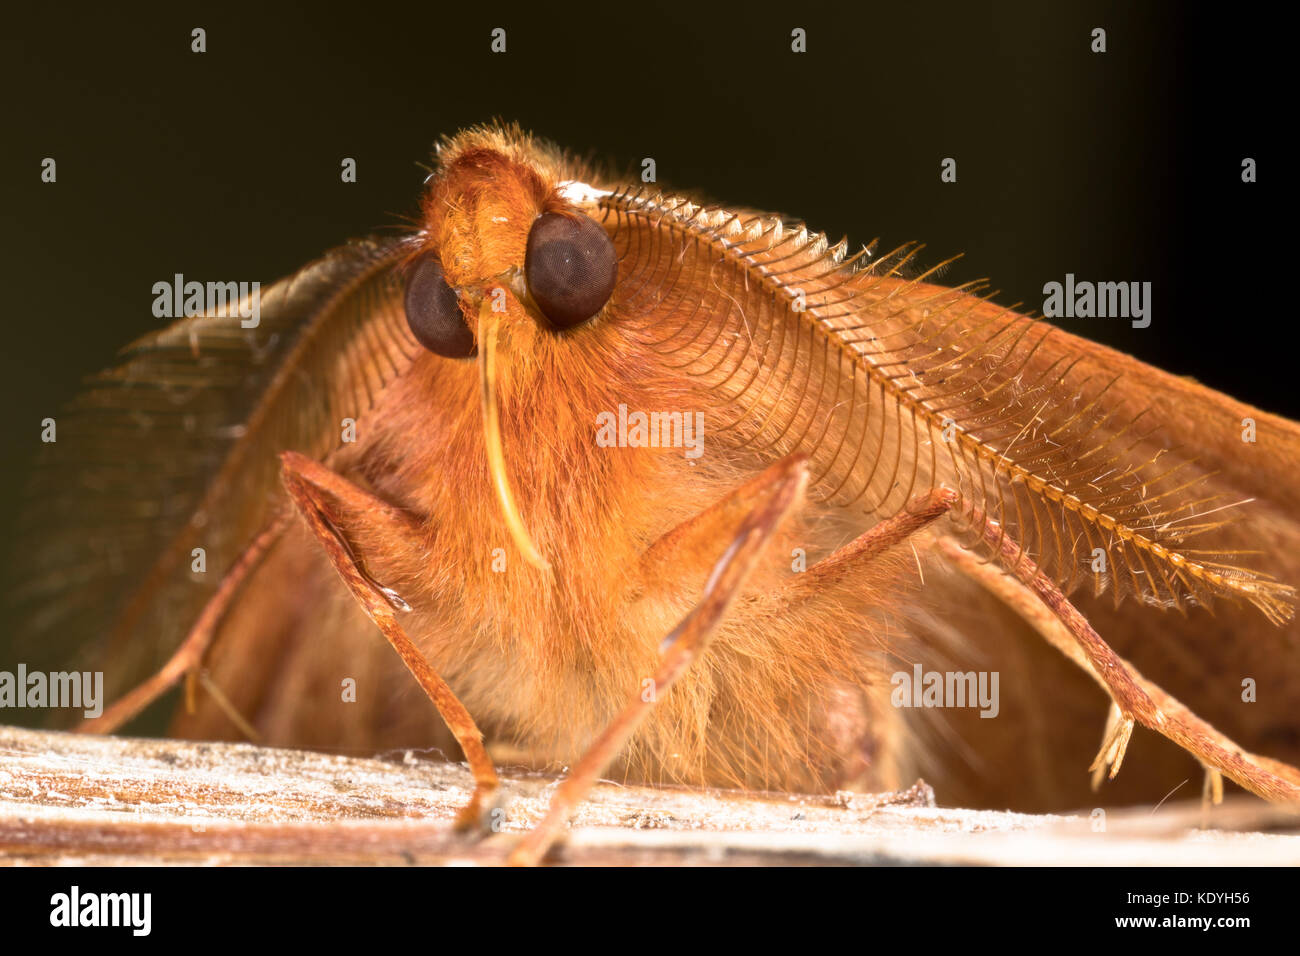 A male feathered thorn moth, showing its highly developed feathery antennae for locating females. - Stock Image